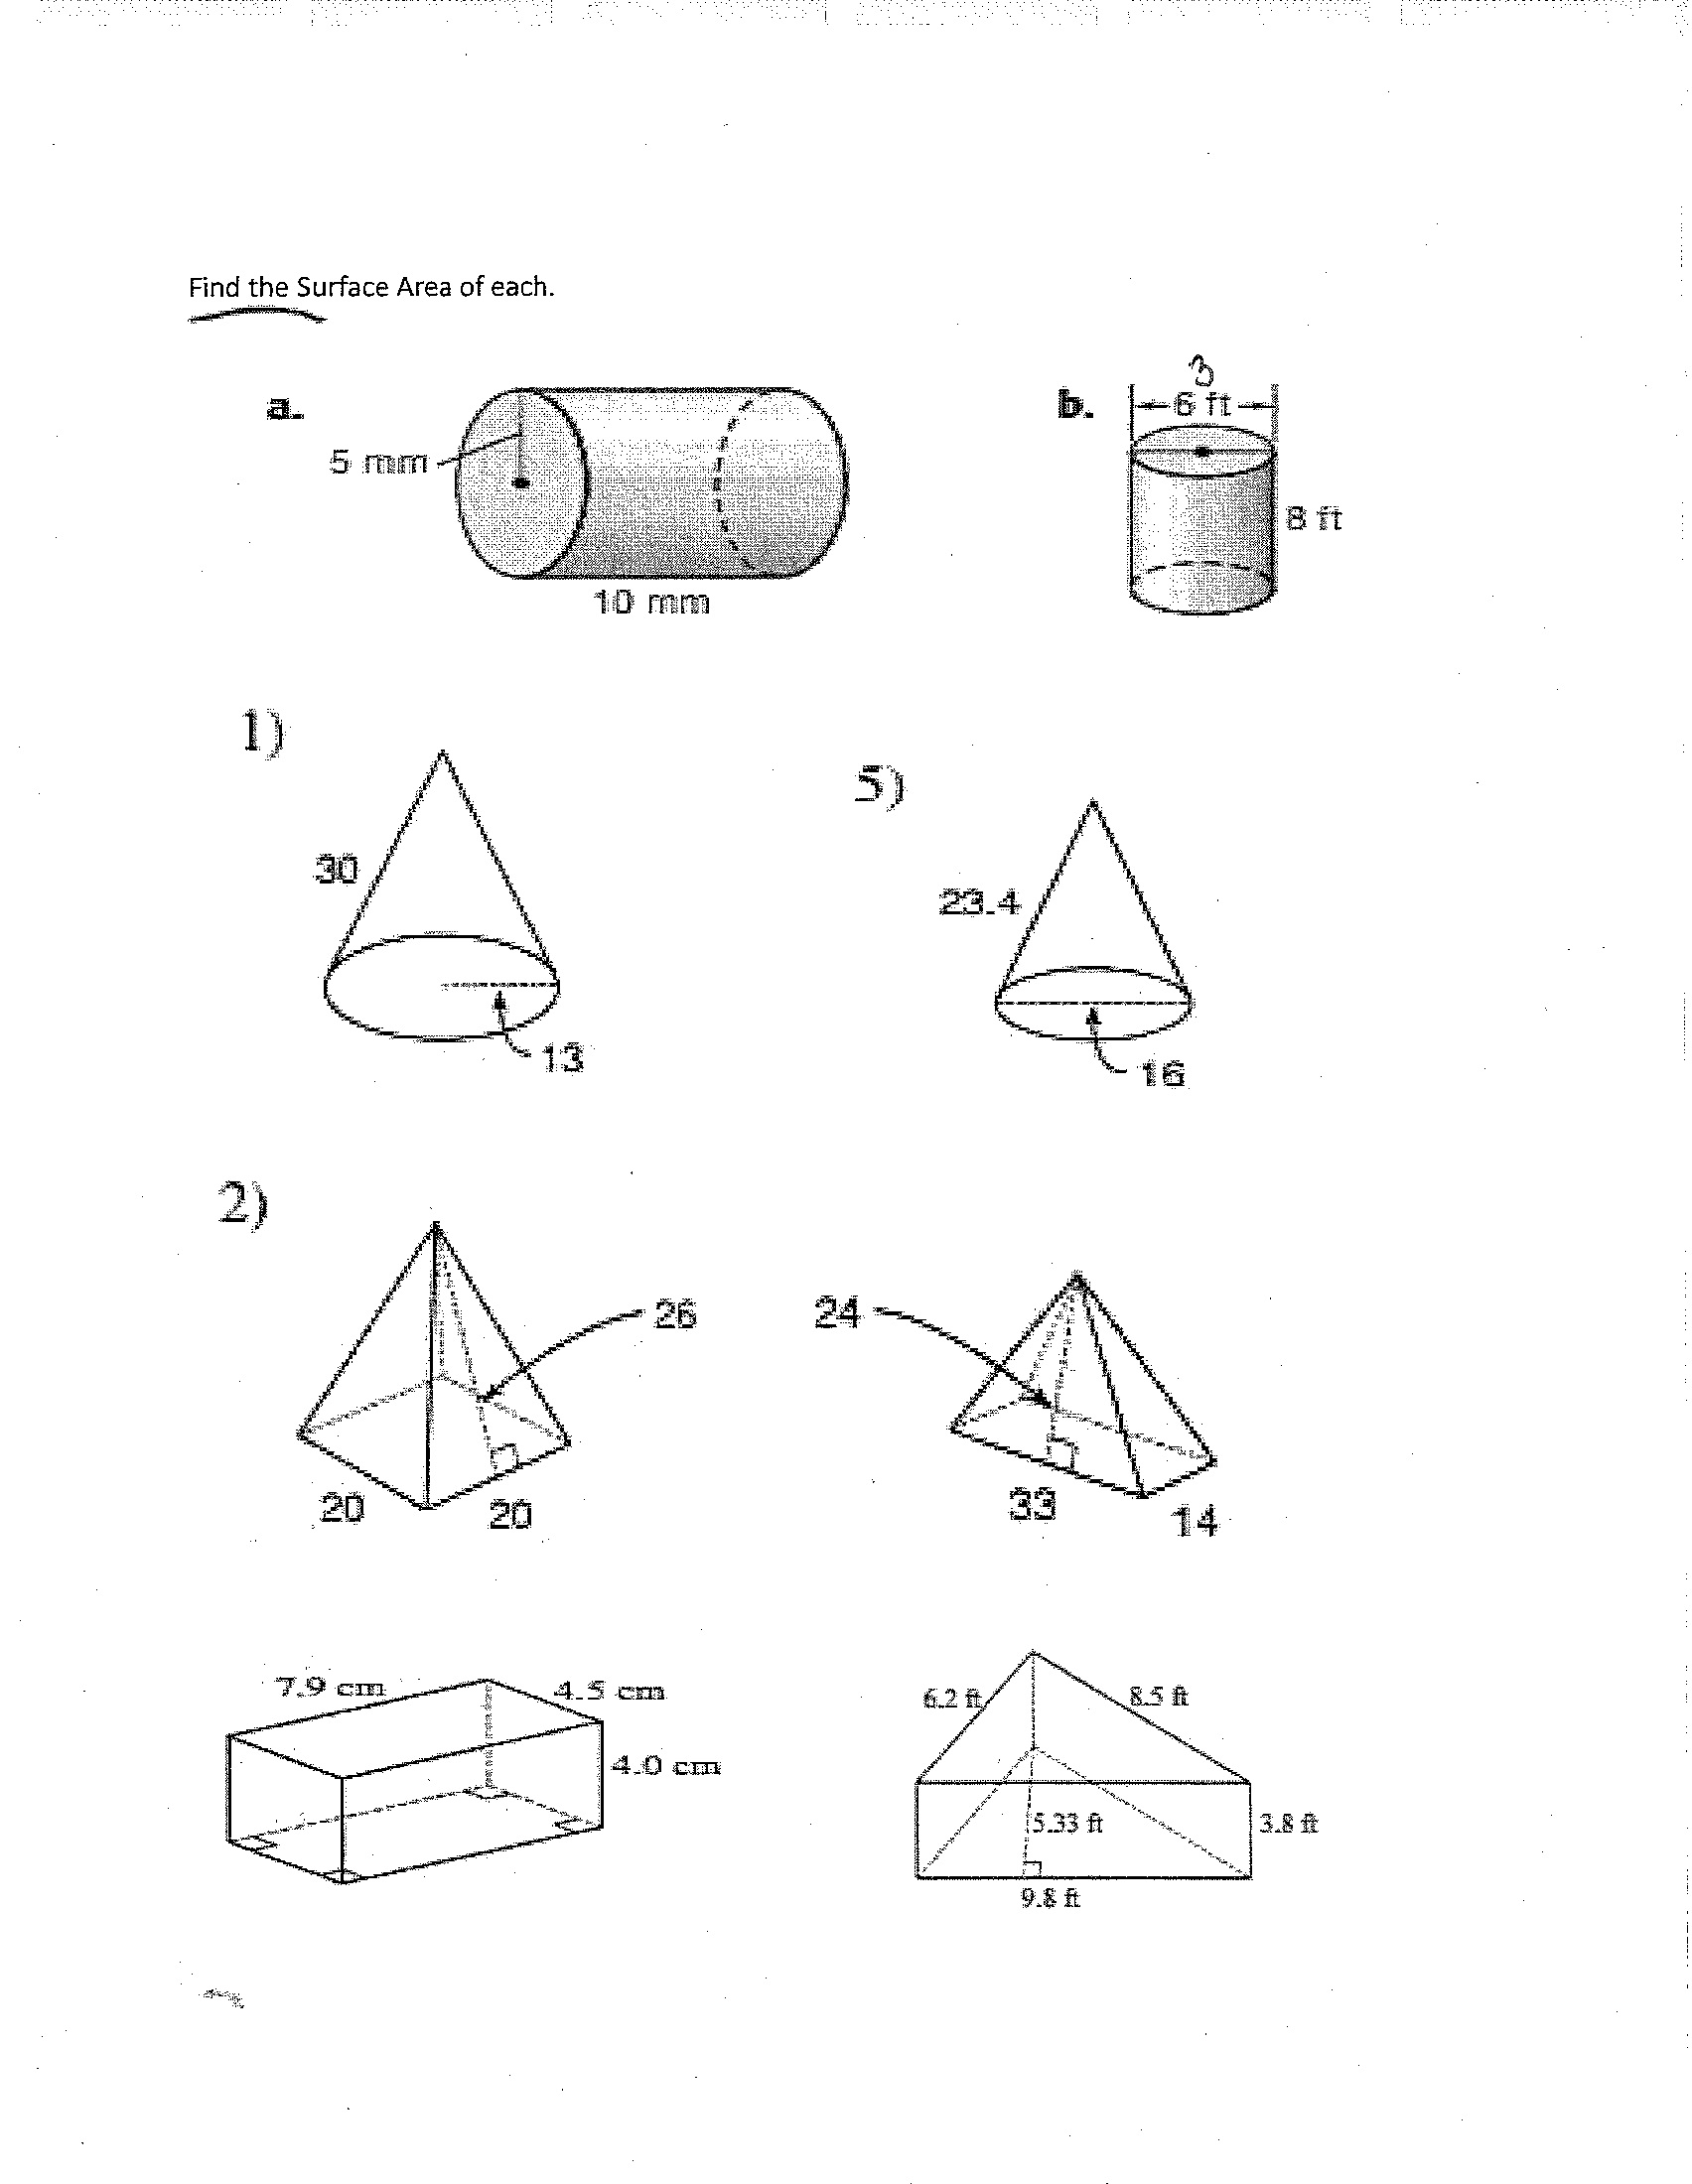 Beautiful 12 Best Images Of Surface Area Worksheets 7th Grade 8th